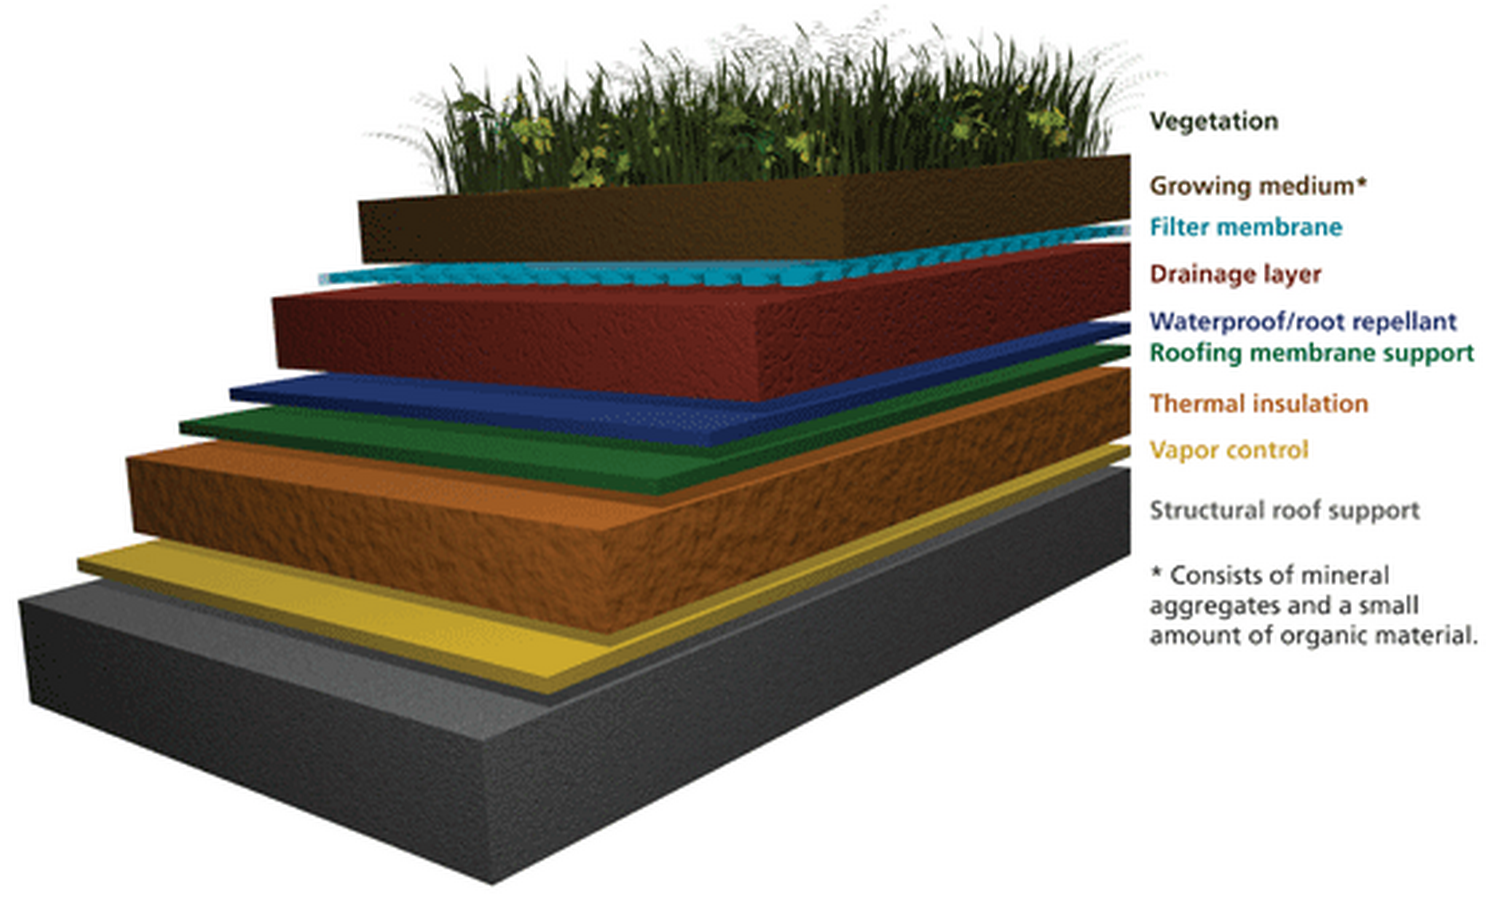 Green Roofs: An urban agricultural opportunity - Sheet1